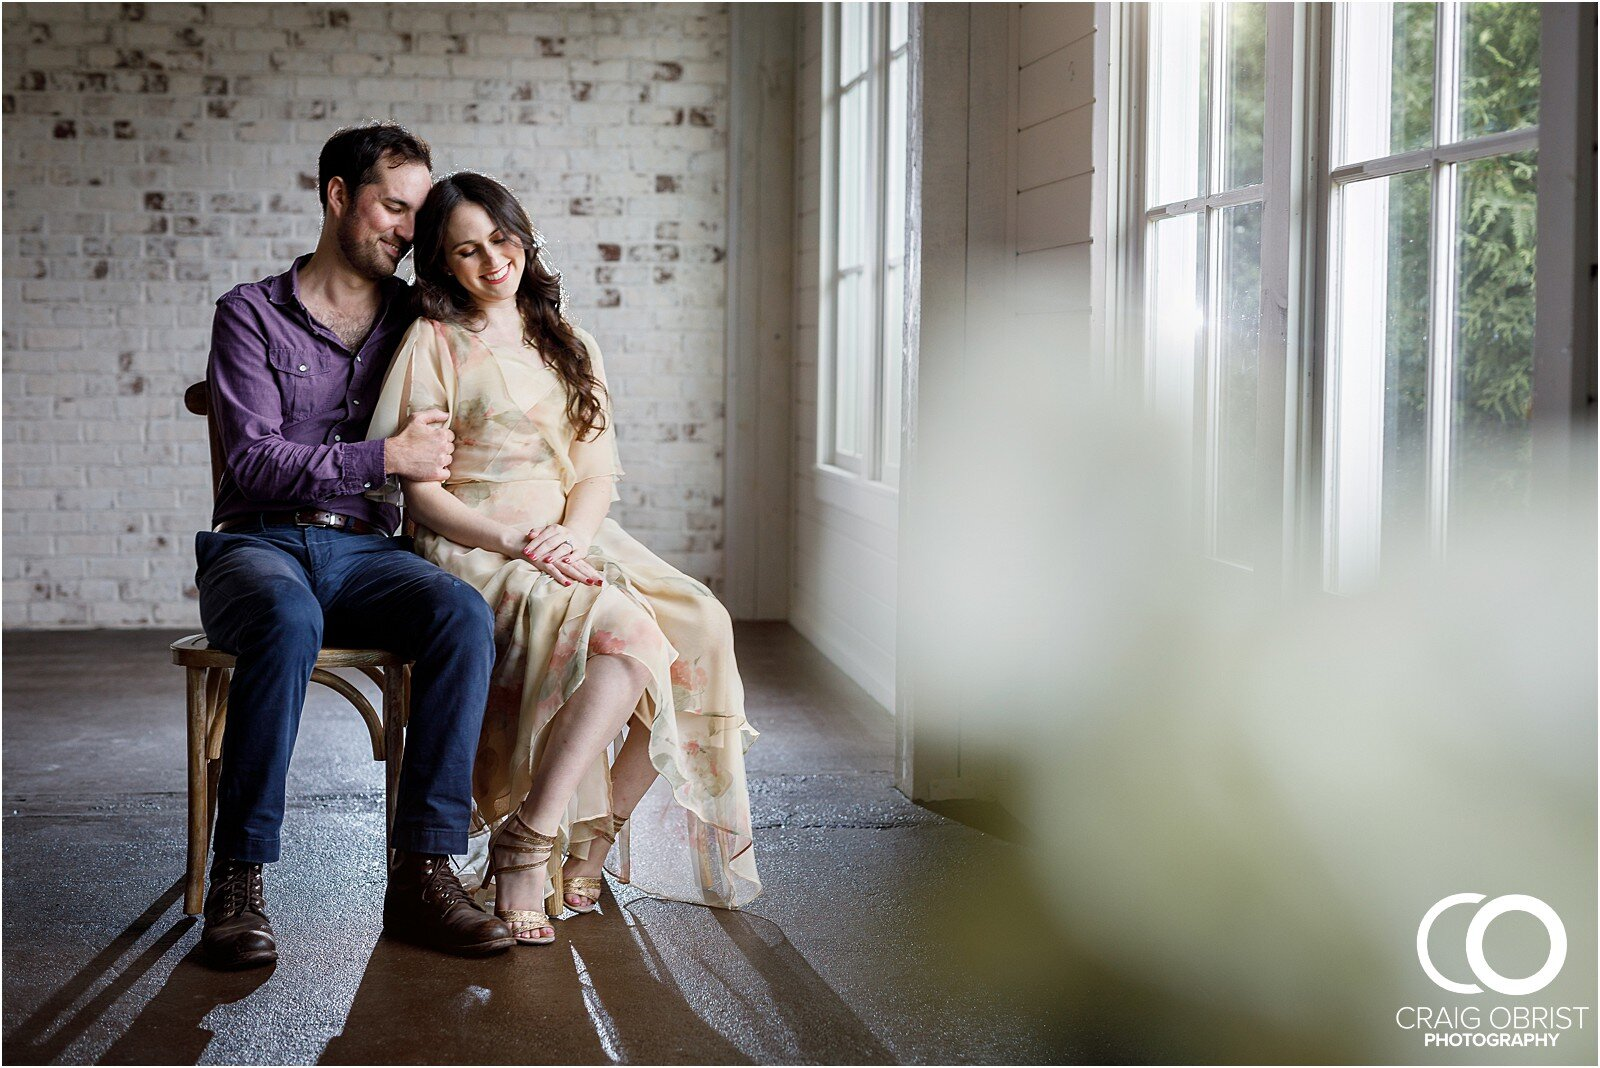 The Barn at Little River Little River Farms Engagement Wedding Portraits Fairy Tale_0002.jpg